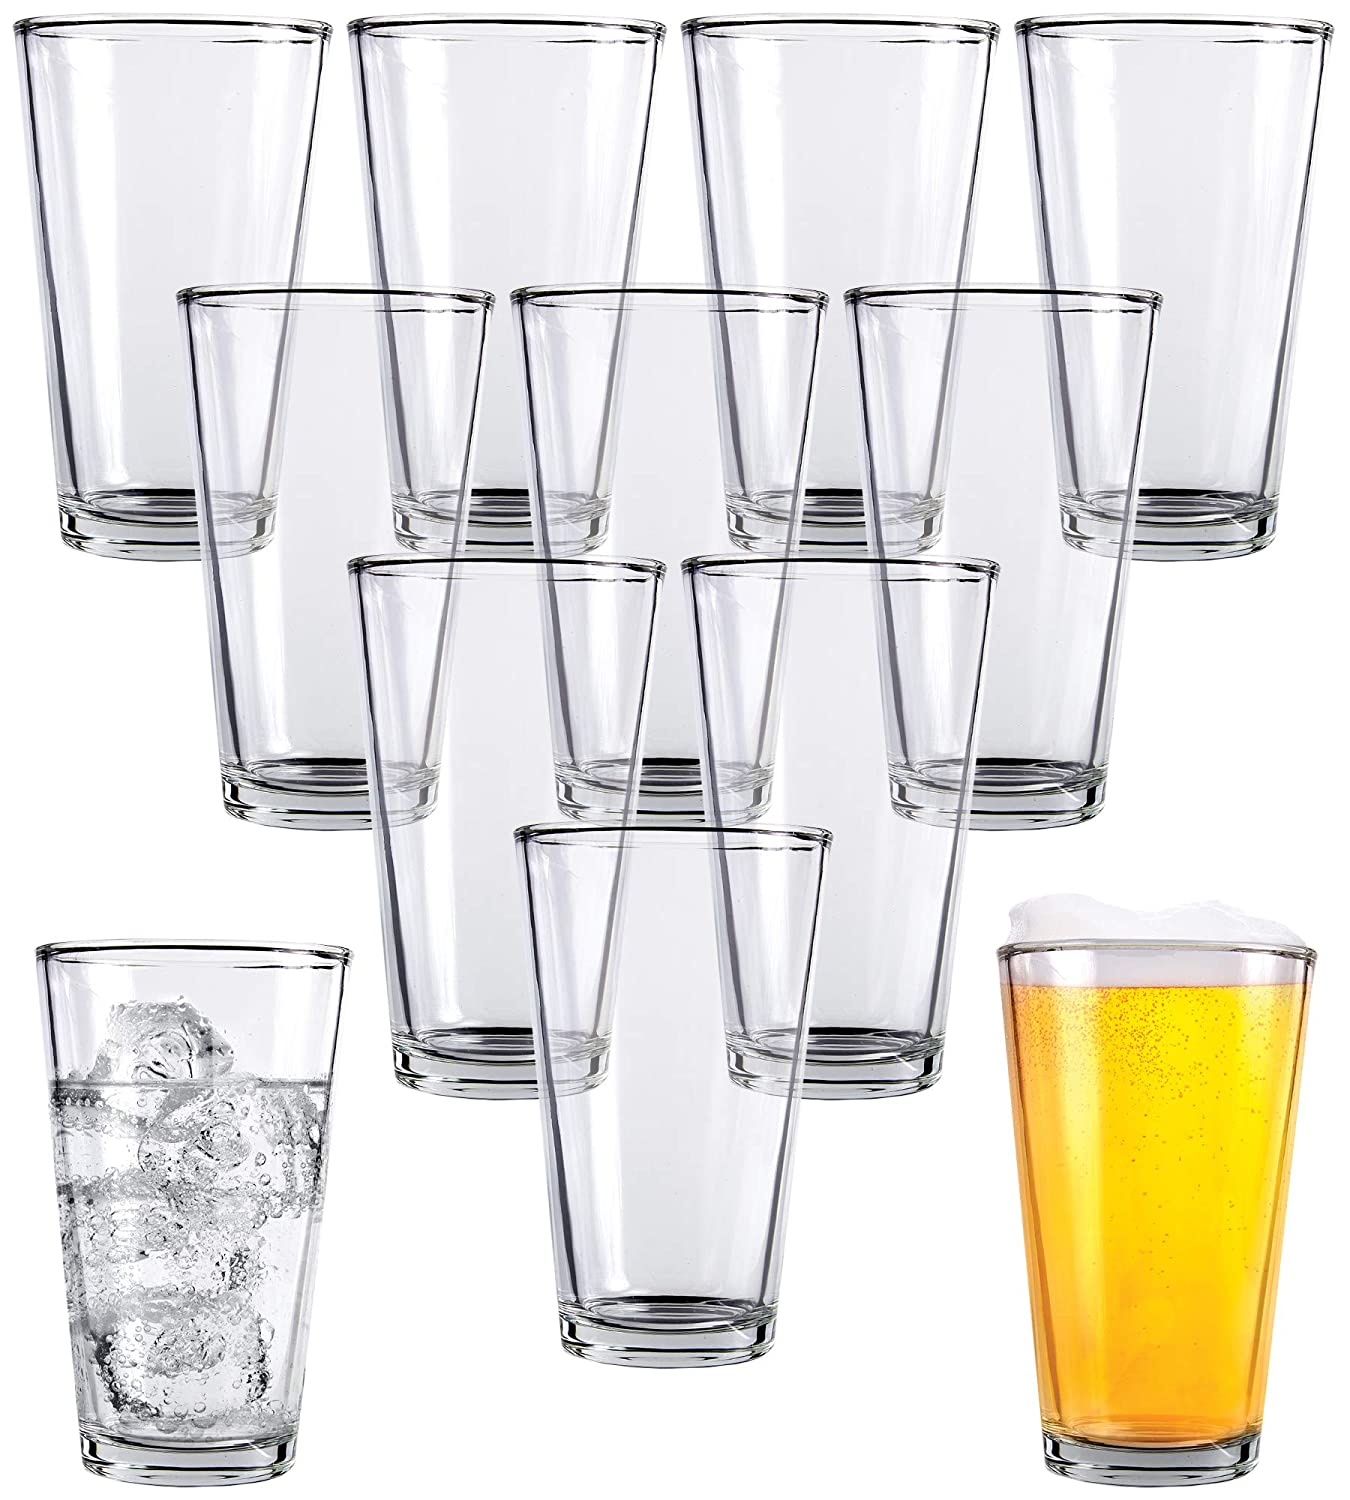 Clear Glass Beer Cups – 12 Pack – All Purpose Drinking Tumblers, 16 oz – Elegant Design for Home and Kitchen – Lead and BPA Free, Great for Restaurants, Bars, Parties – by Kitchen Lux